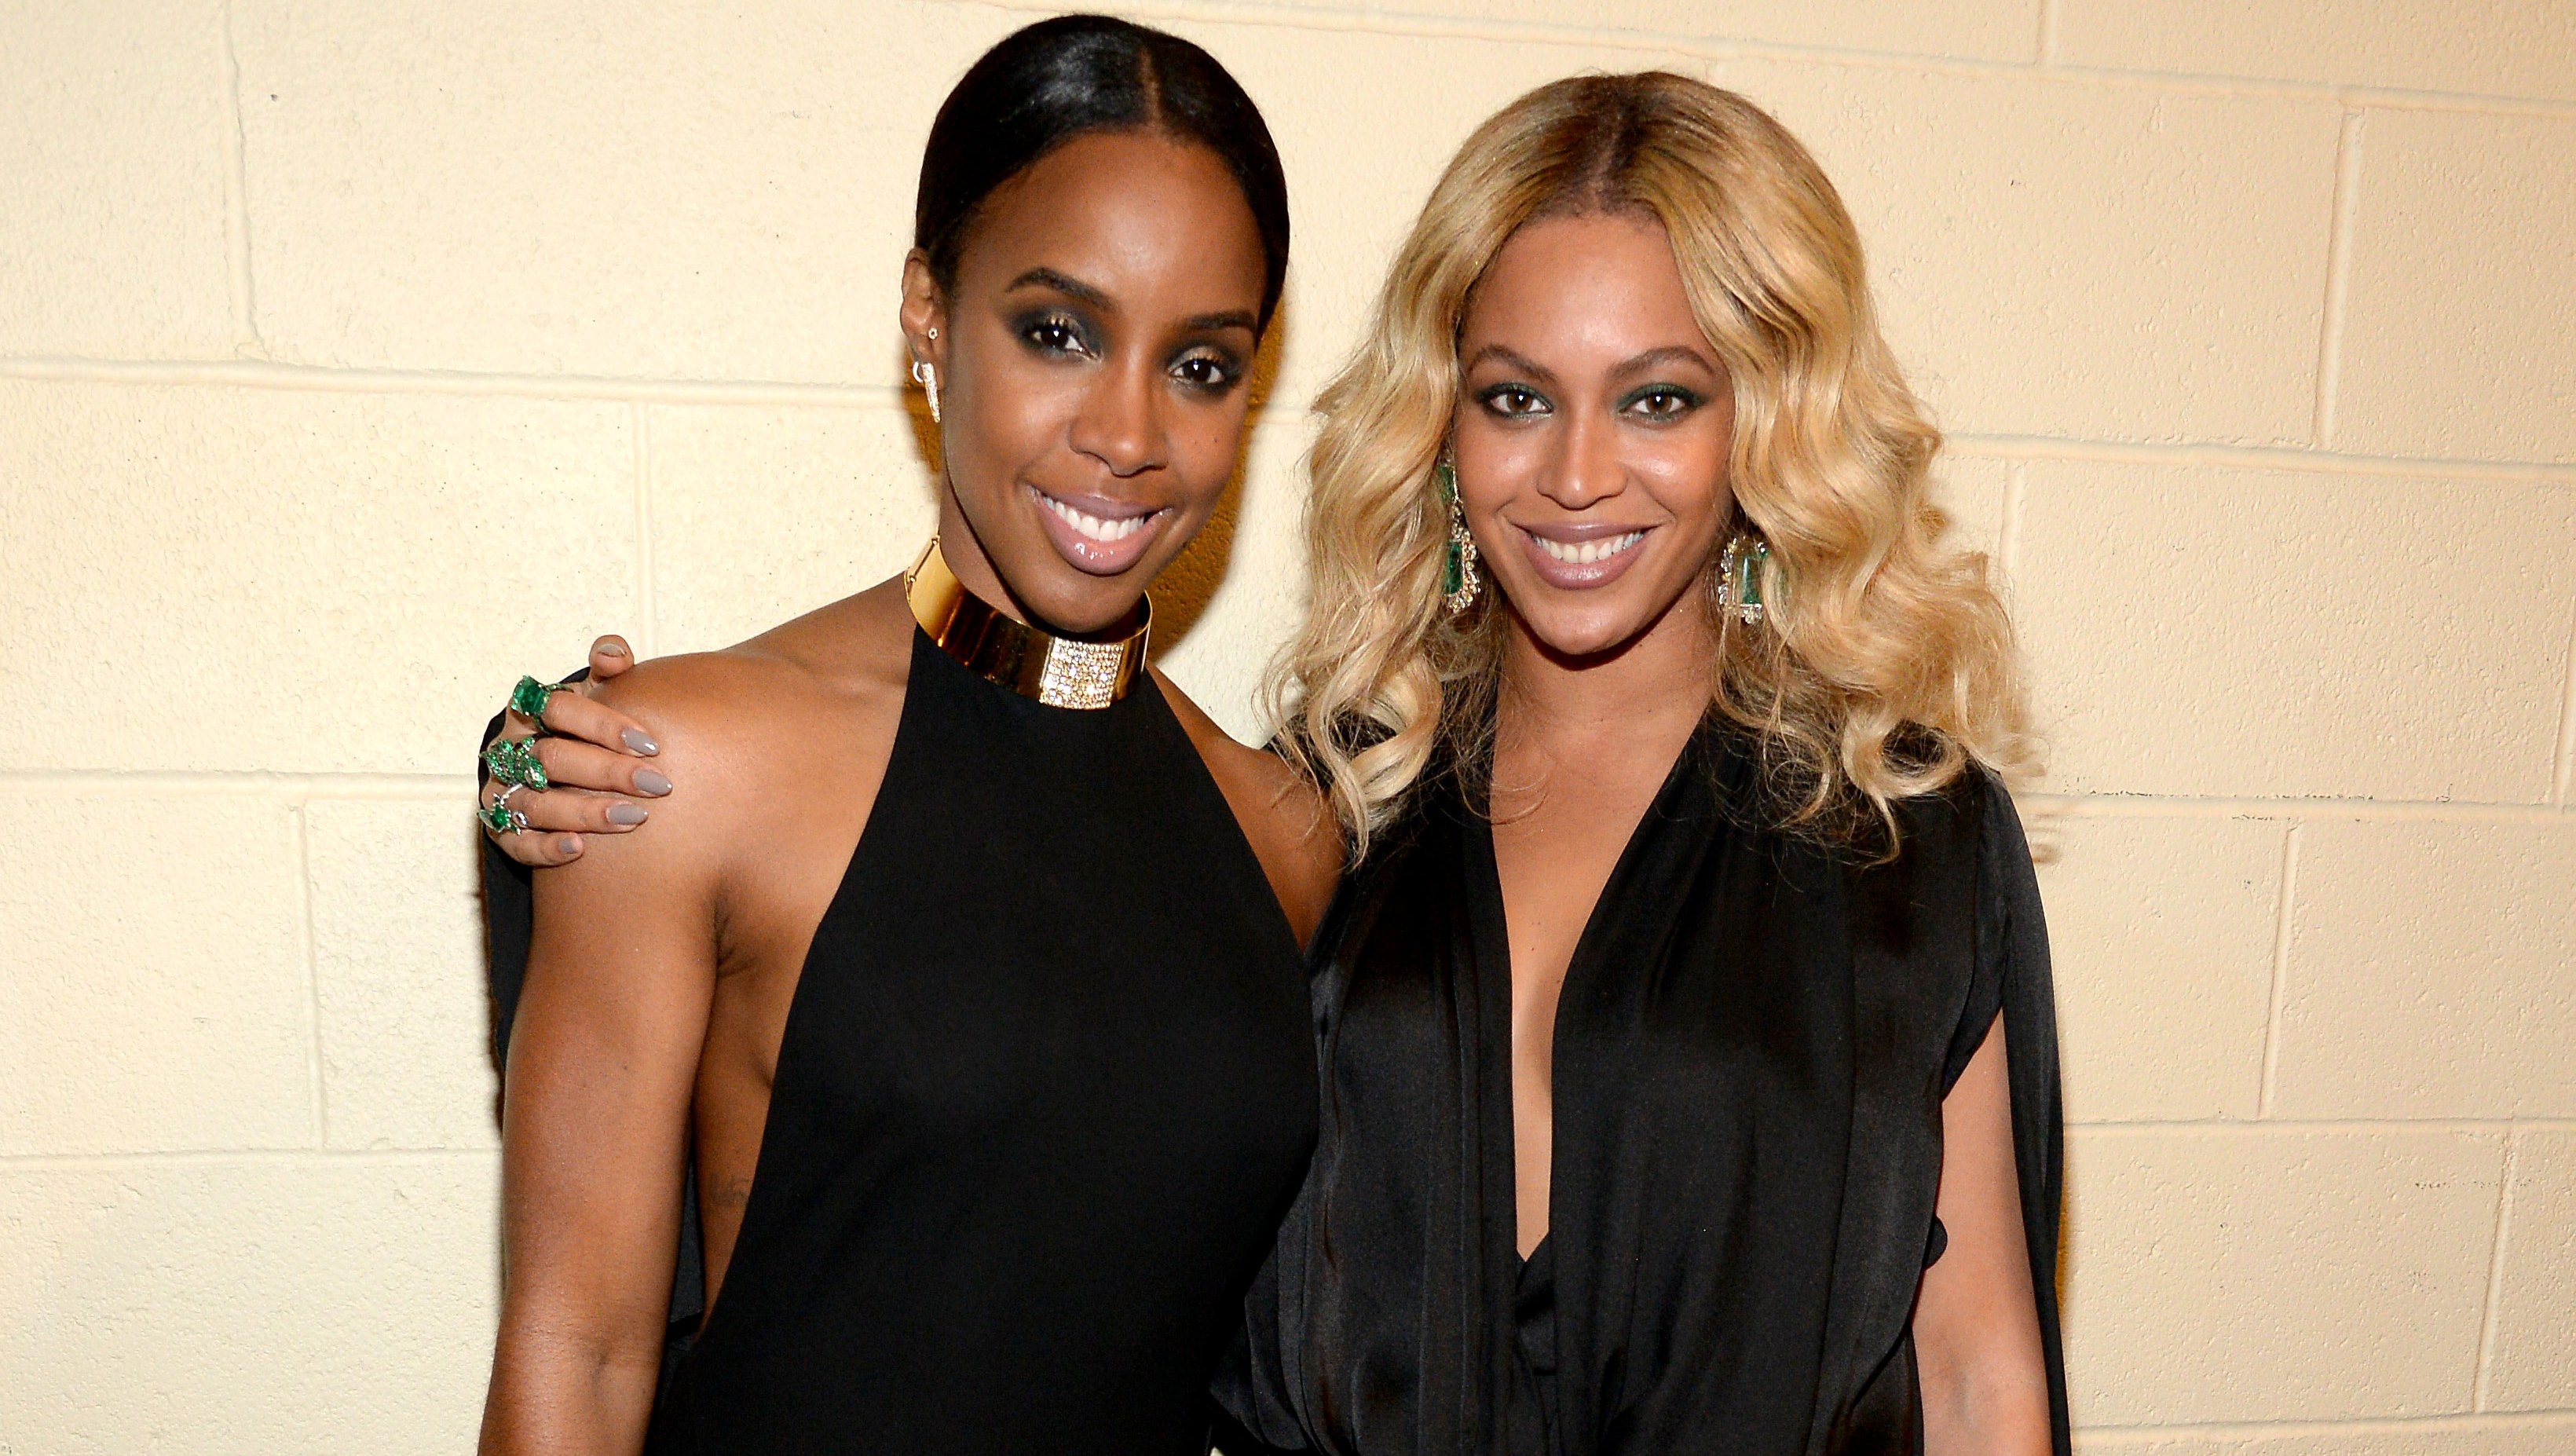 Beyonce and Kelly Rowland Attend Janet Jackson's Vegas Residency Together